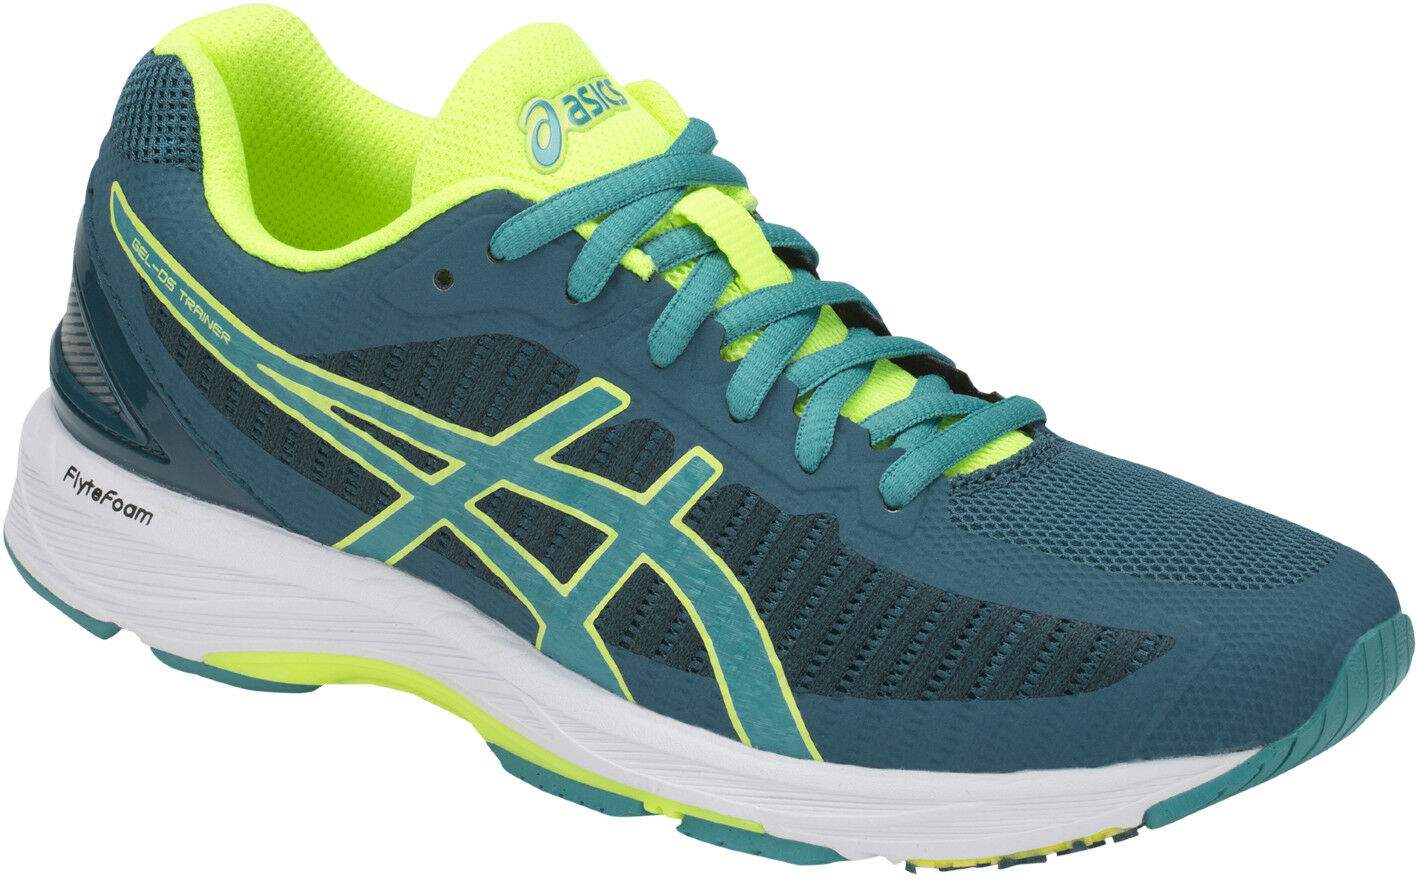 Asics Gel DS Trainer 23 23 23 Womens Running shoes - Green 6a77ac